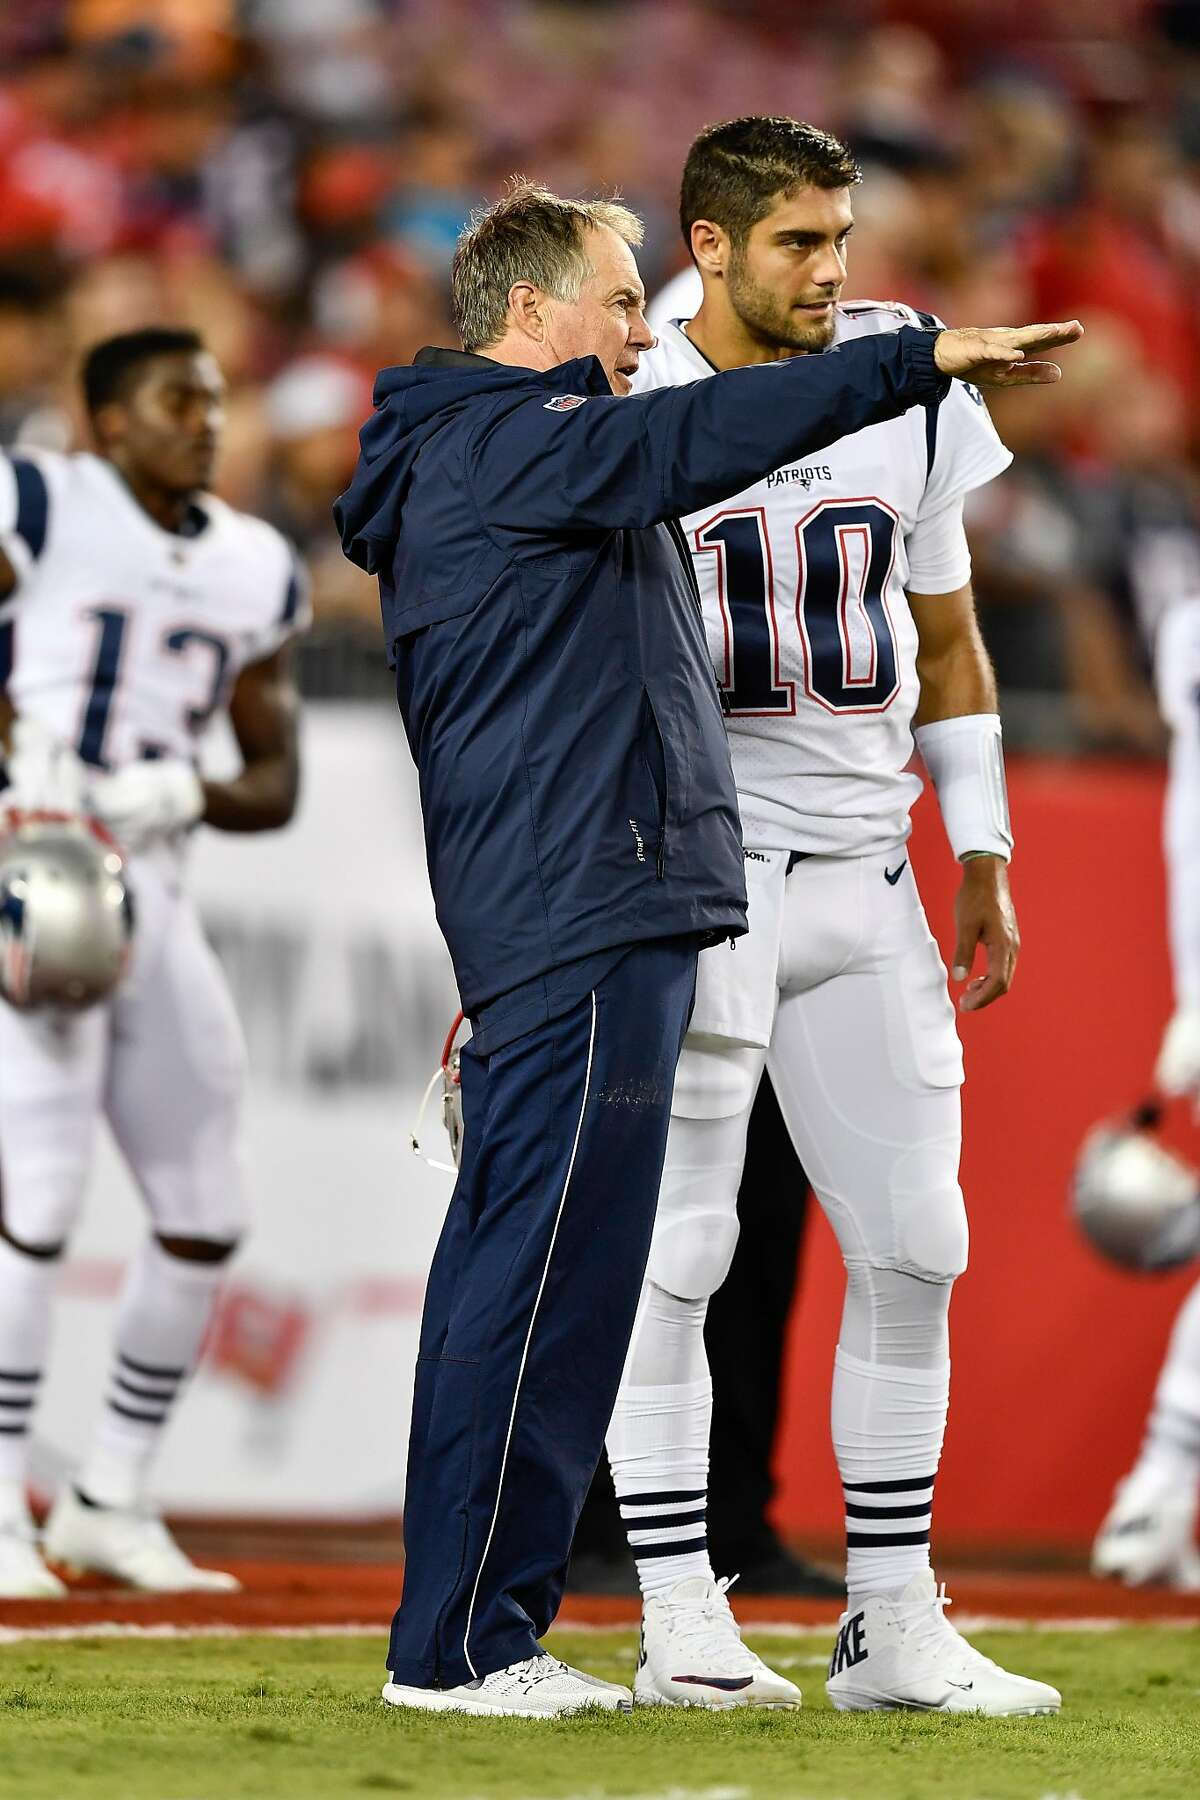 New England Patriots head Bill Belichick speaks to New England Patriots quarterback Jimmy Garoppolo (10) prior to an NFL football game between the New England Patriots and the Tampa Bay Buccaneers on October 05, 2017, at Raymond James Stadium in Tampa, FL. The Patriots defeated the Buccaneers 19-14.